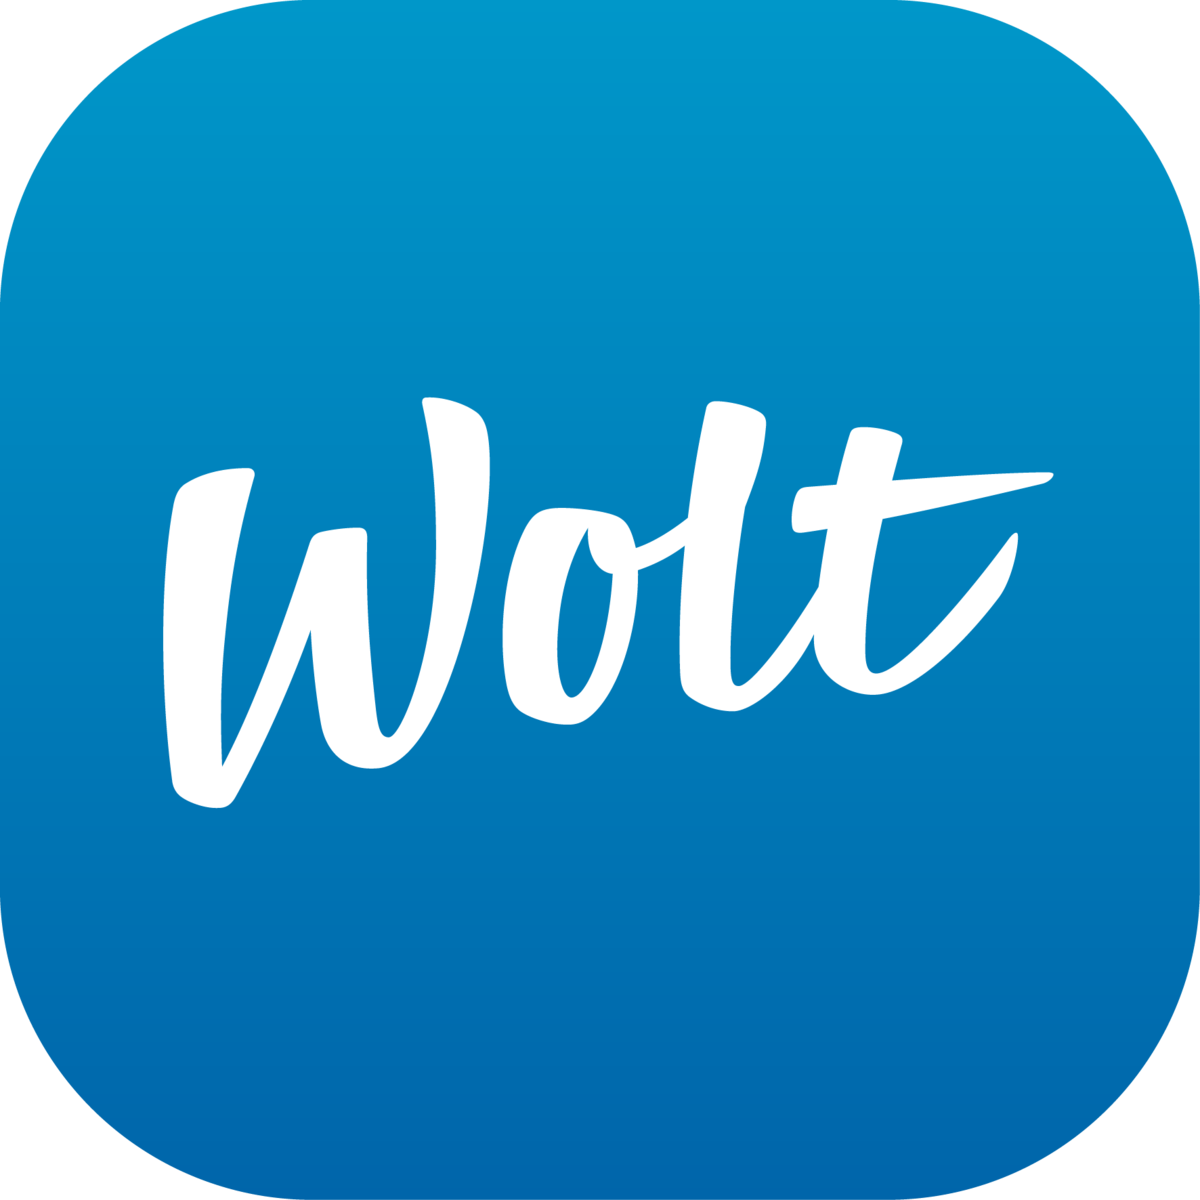 File:Wolt icon blue.png - Wikimedia Commons